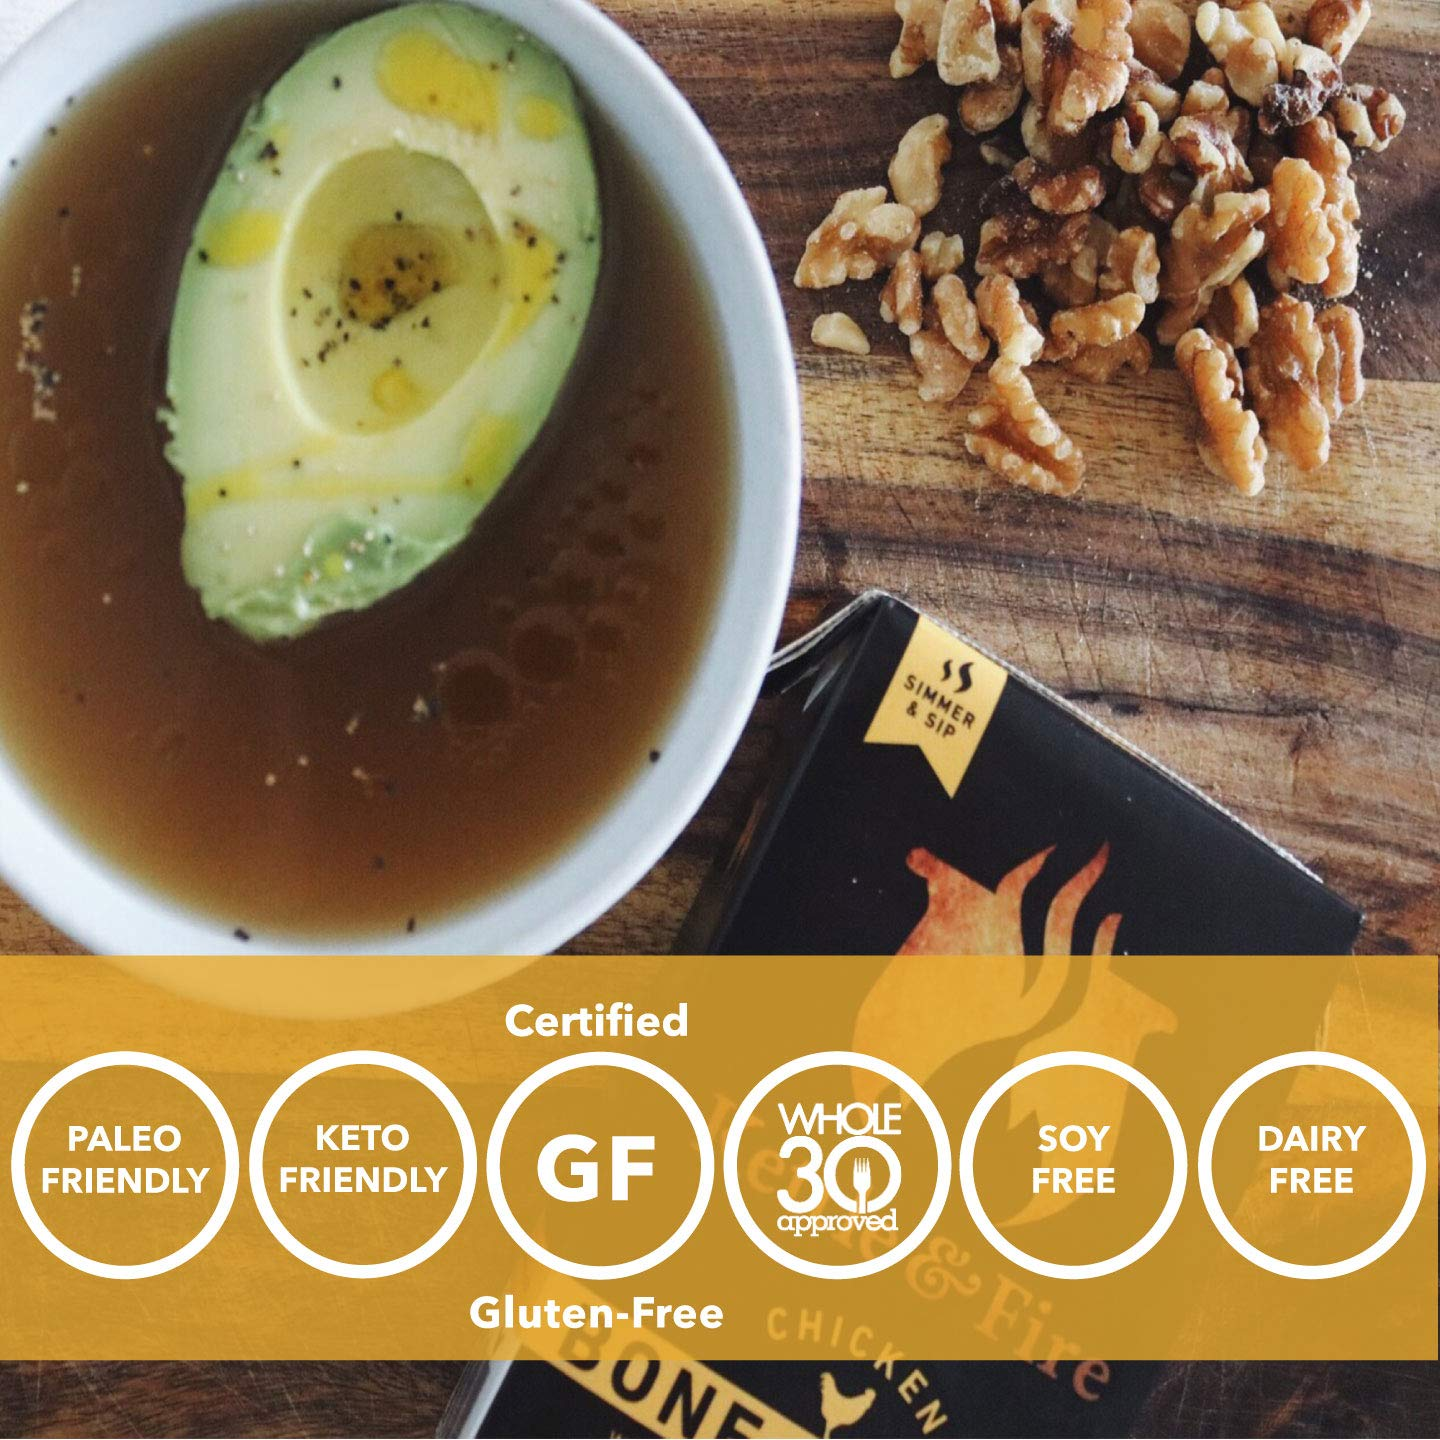 Chicken Bone Broth Soup by Kettle and Fire, Pack of 4, Keto Diet, Paleo Friendly, Whole 30 Approved, Gluten Free, with Collagen, 10g of protein, 16.2 fl oz by Kettle & Fire (Image #4)